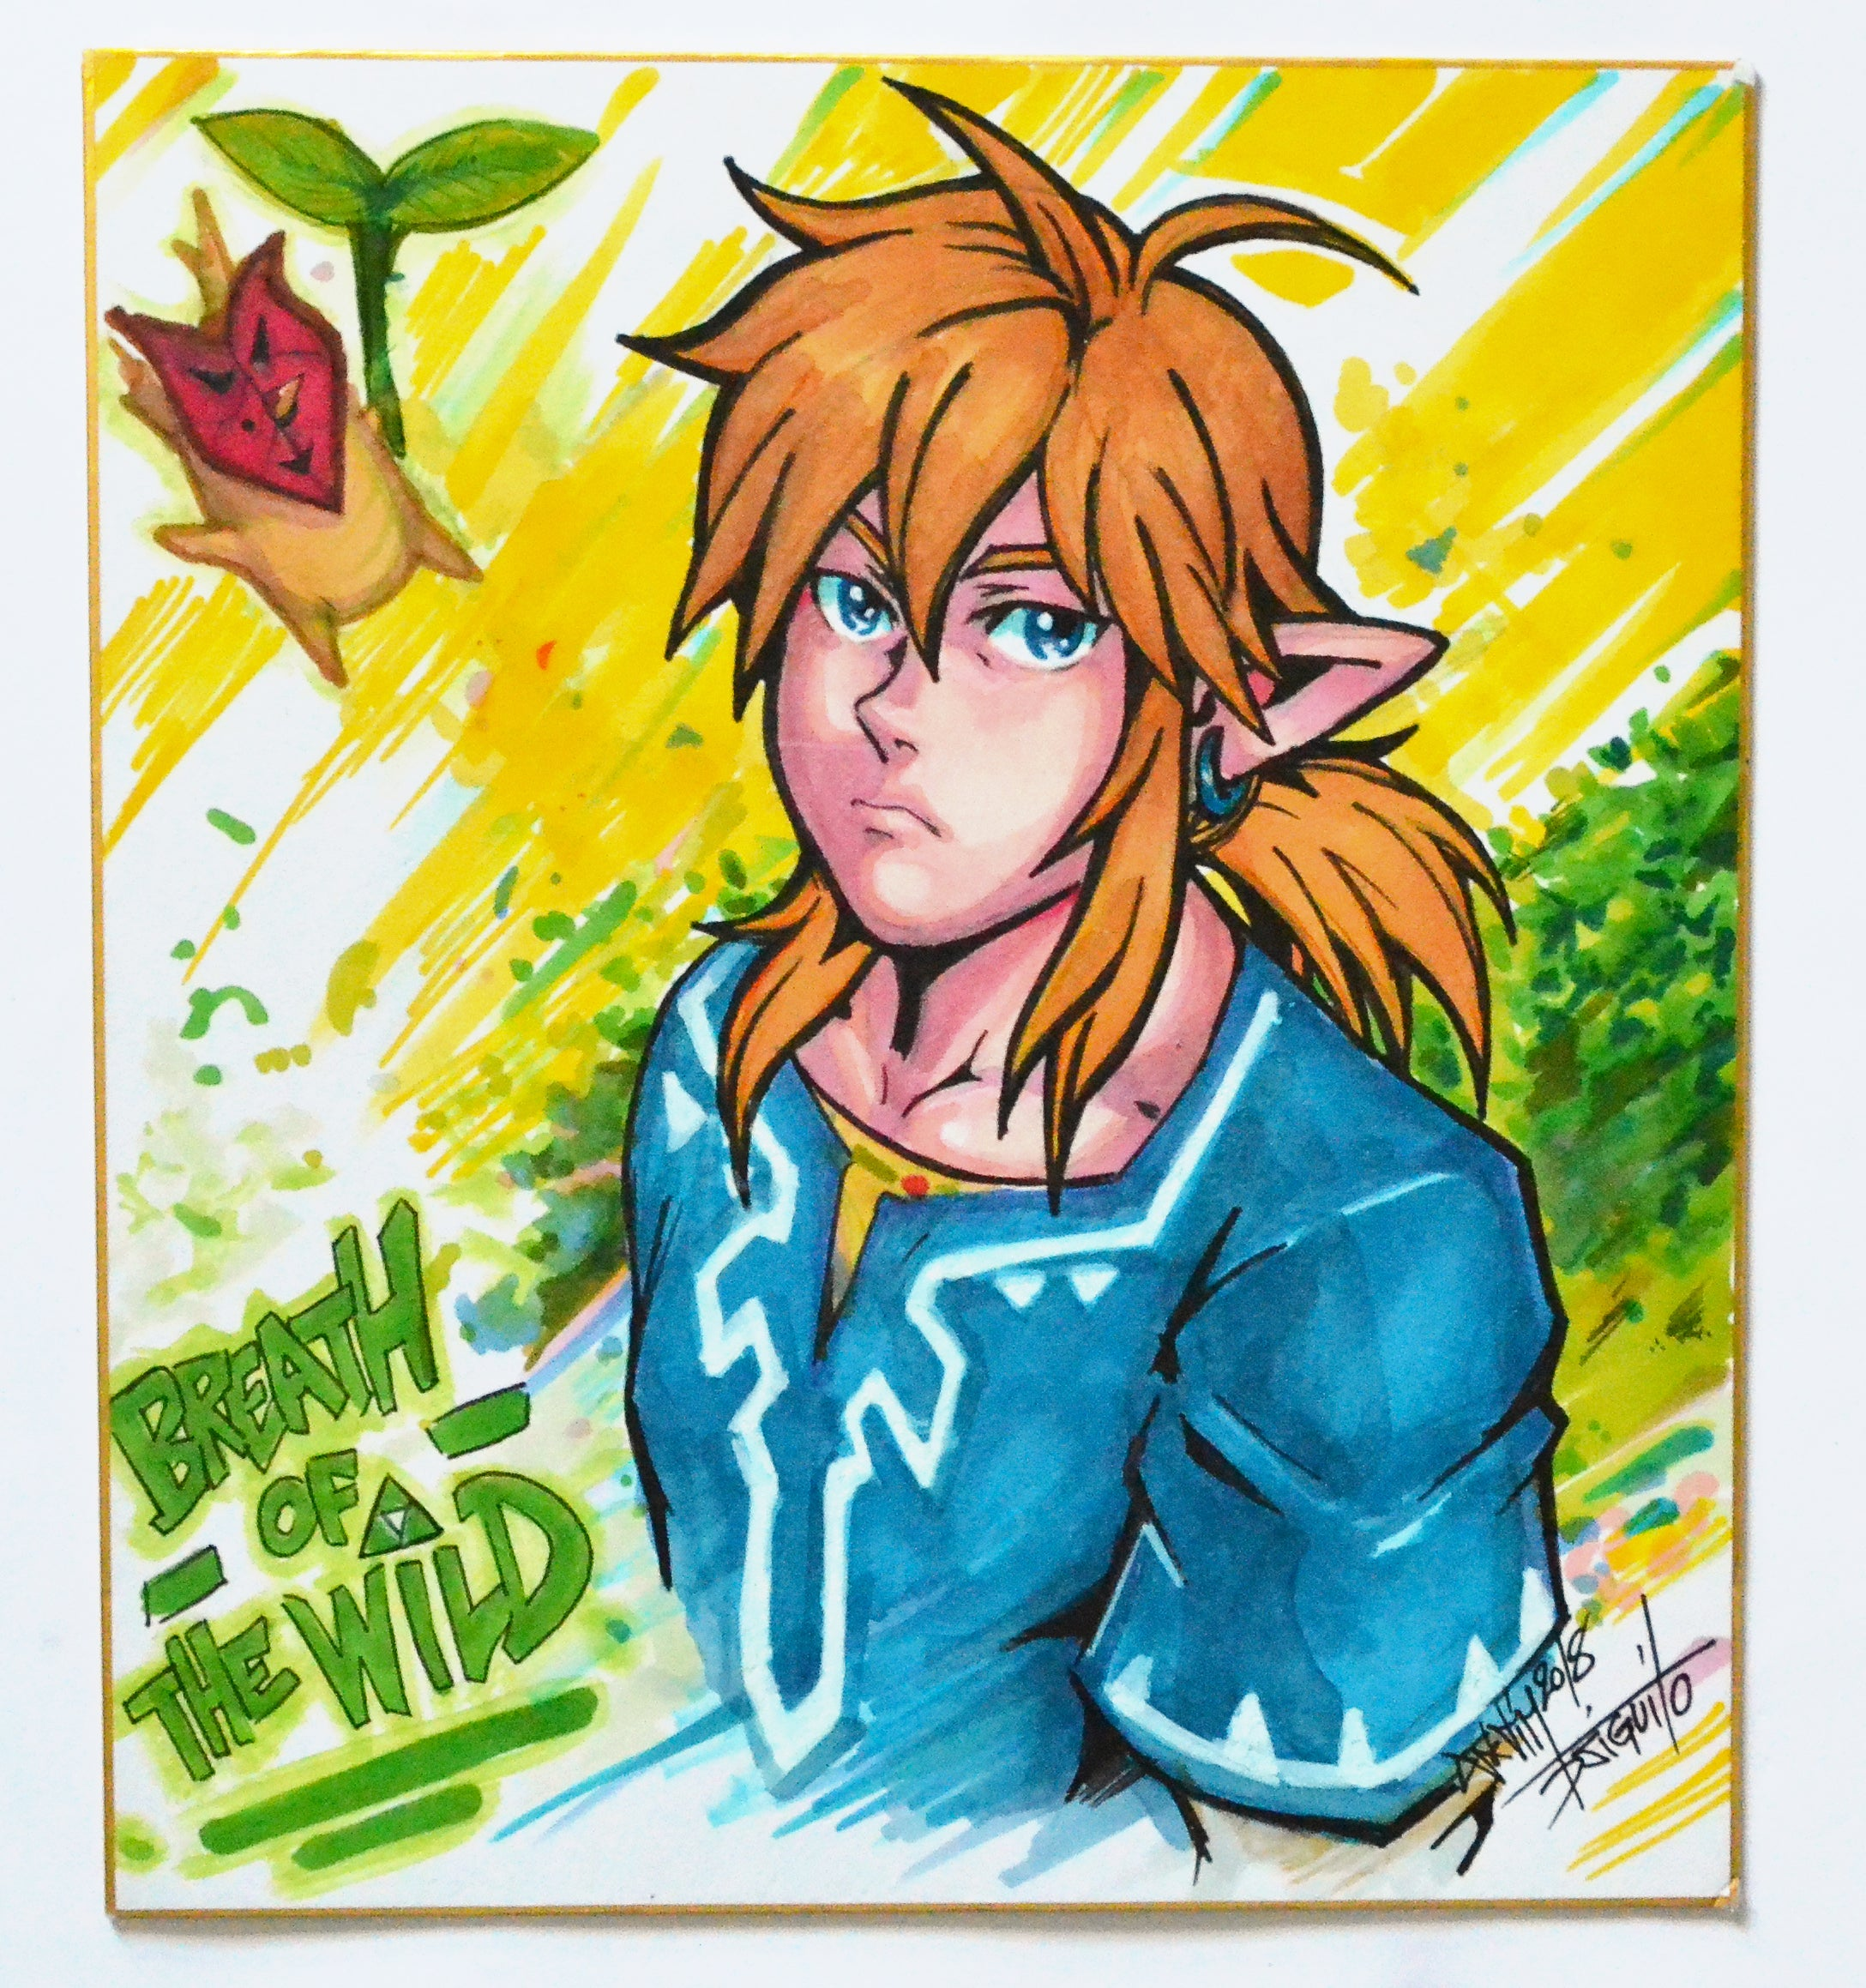 The Legend Of Zelda Shikishi Original by Djiguito